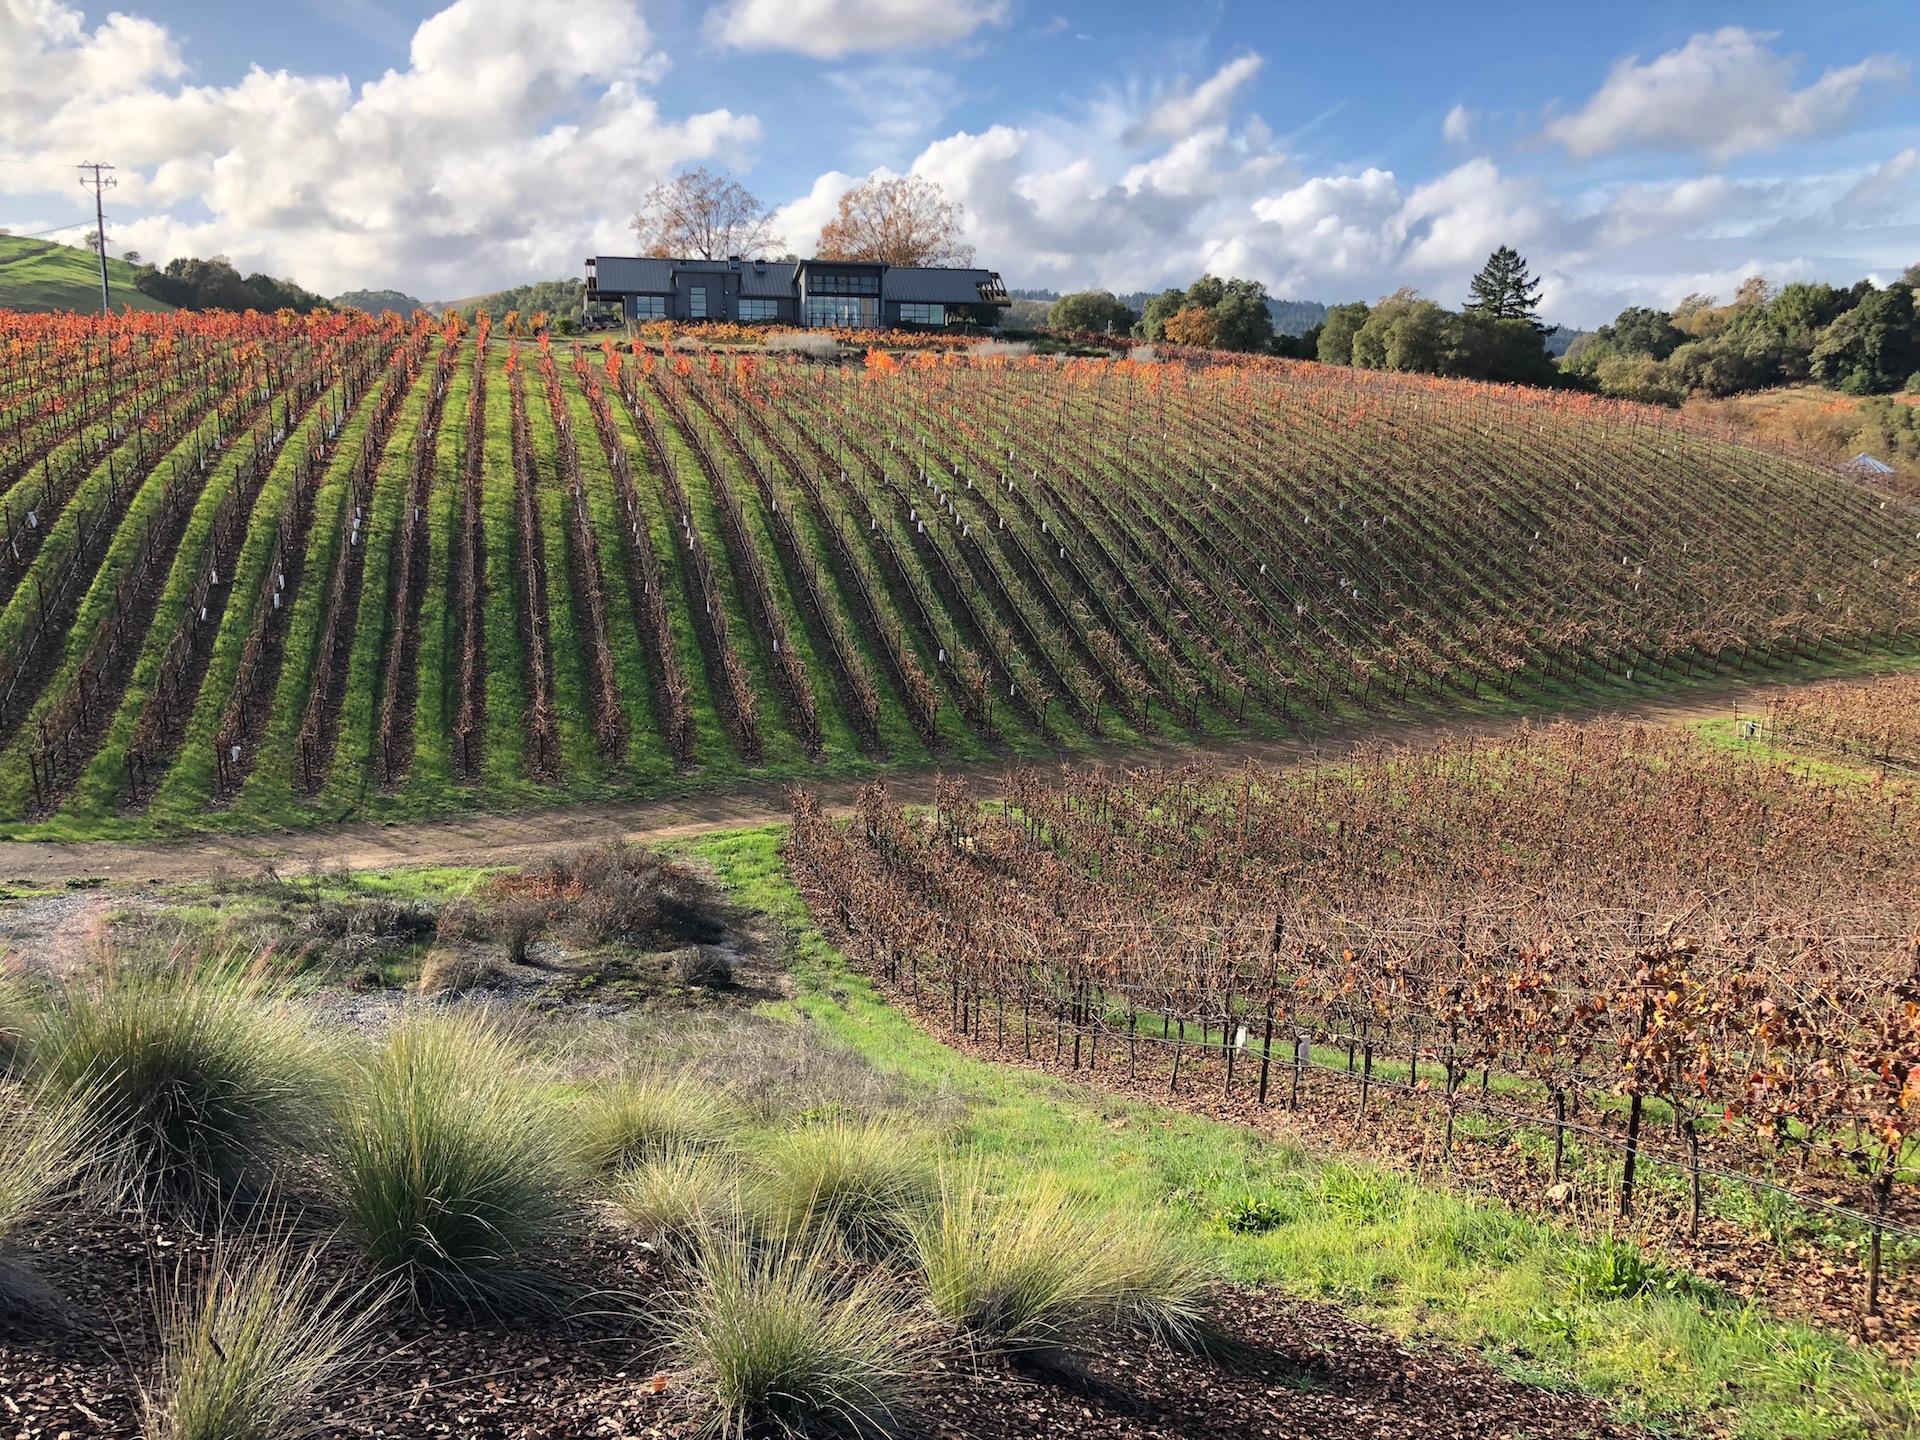 The magnificent MacRostie Winery & Vineyards estate in the Russian River Valley